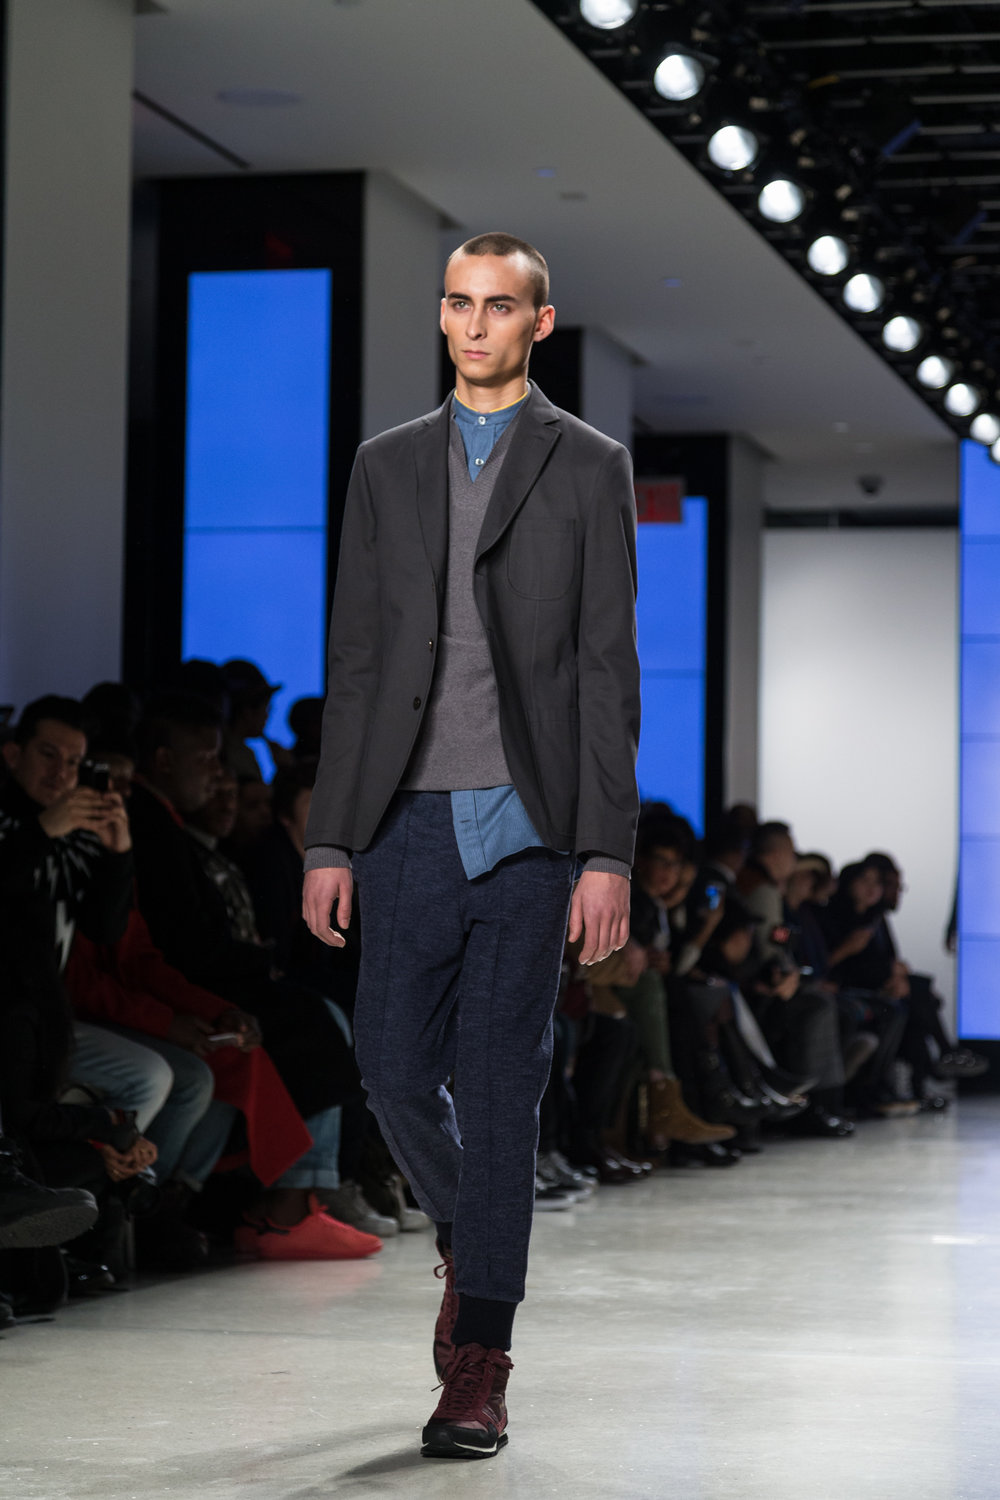 Brett Johnson_FW 2017 _Sherridon Poyer-3286.jpg